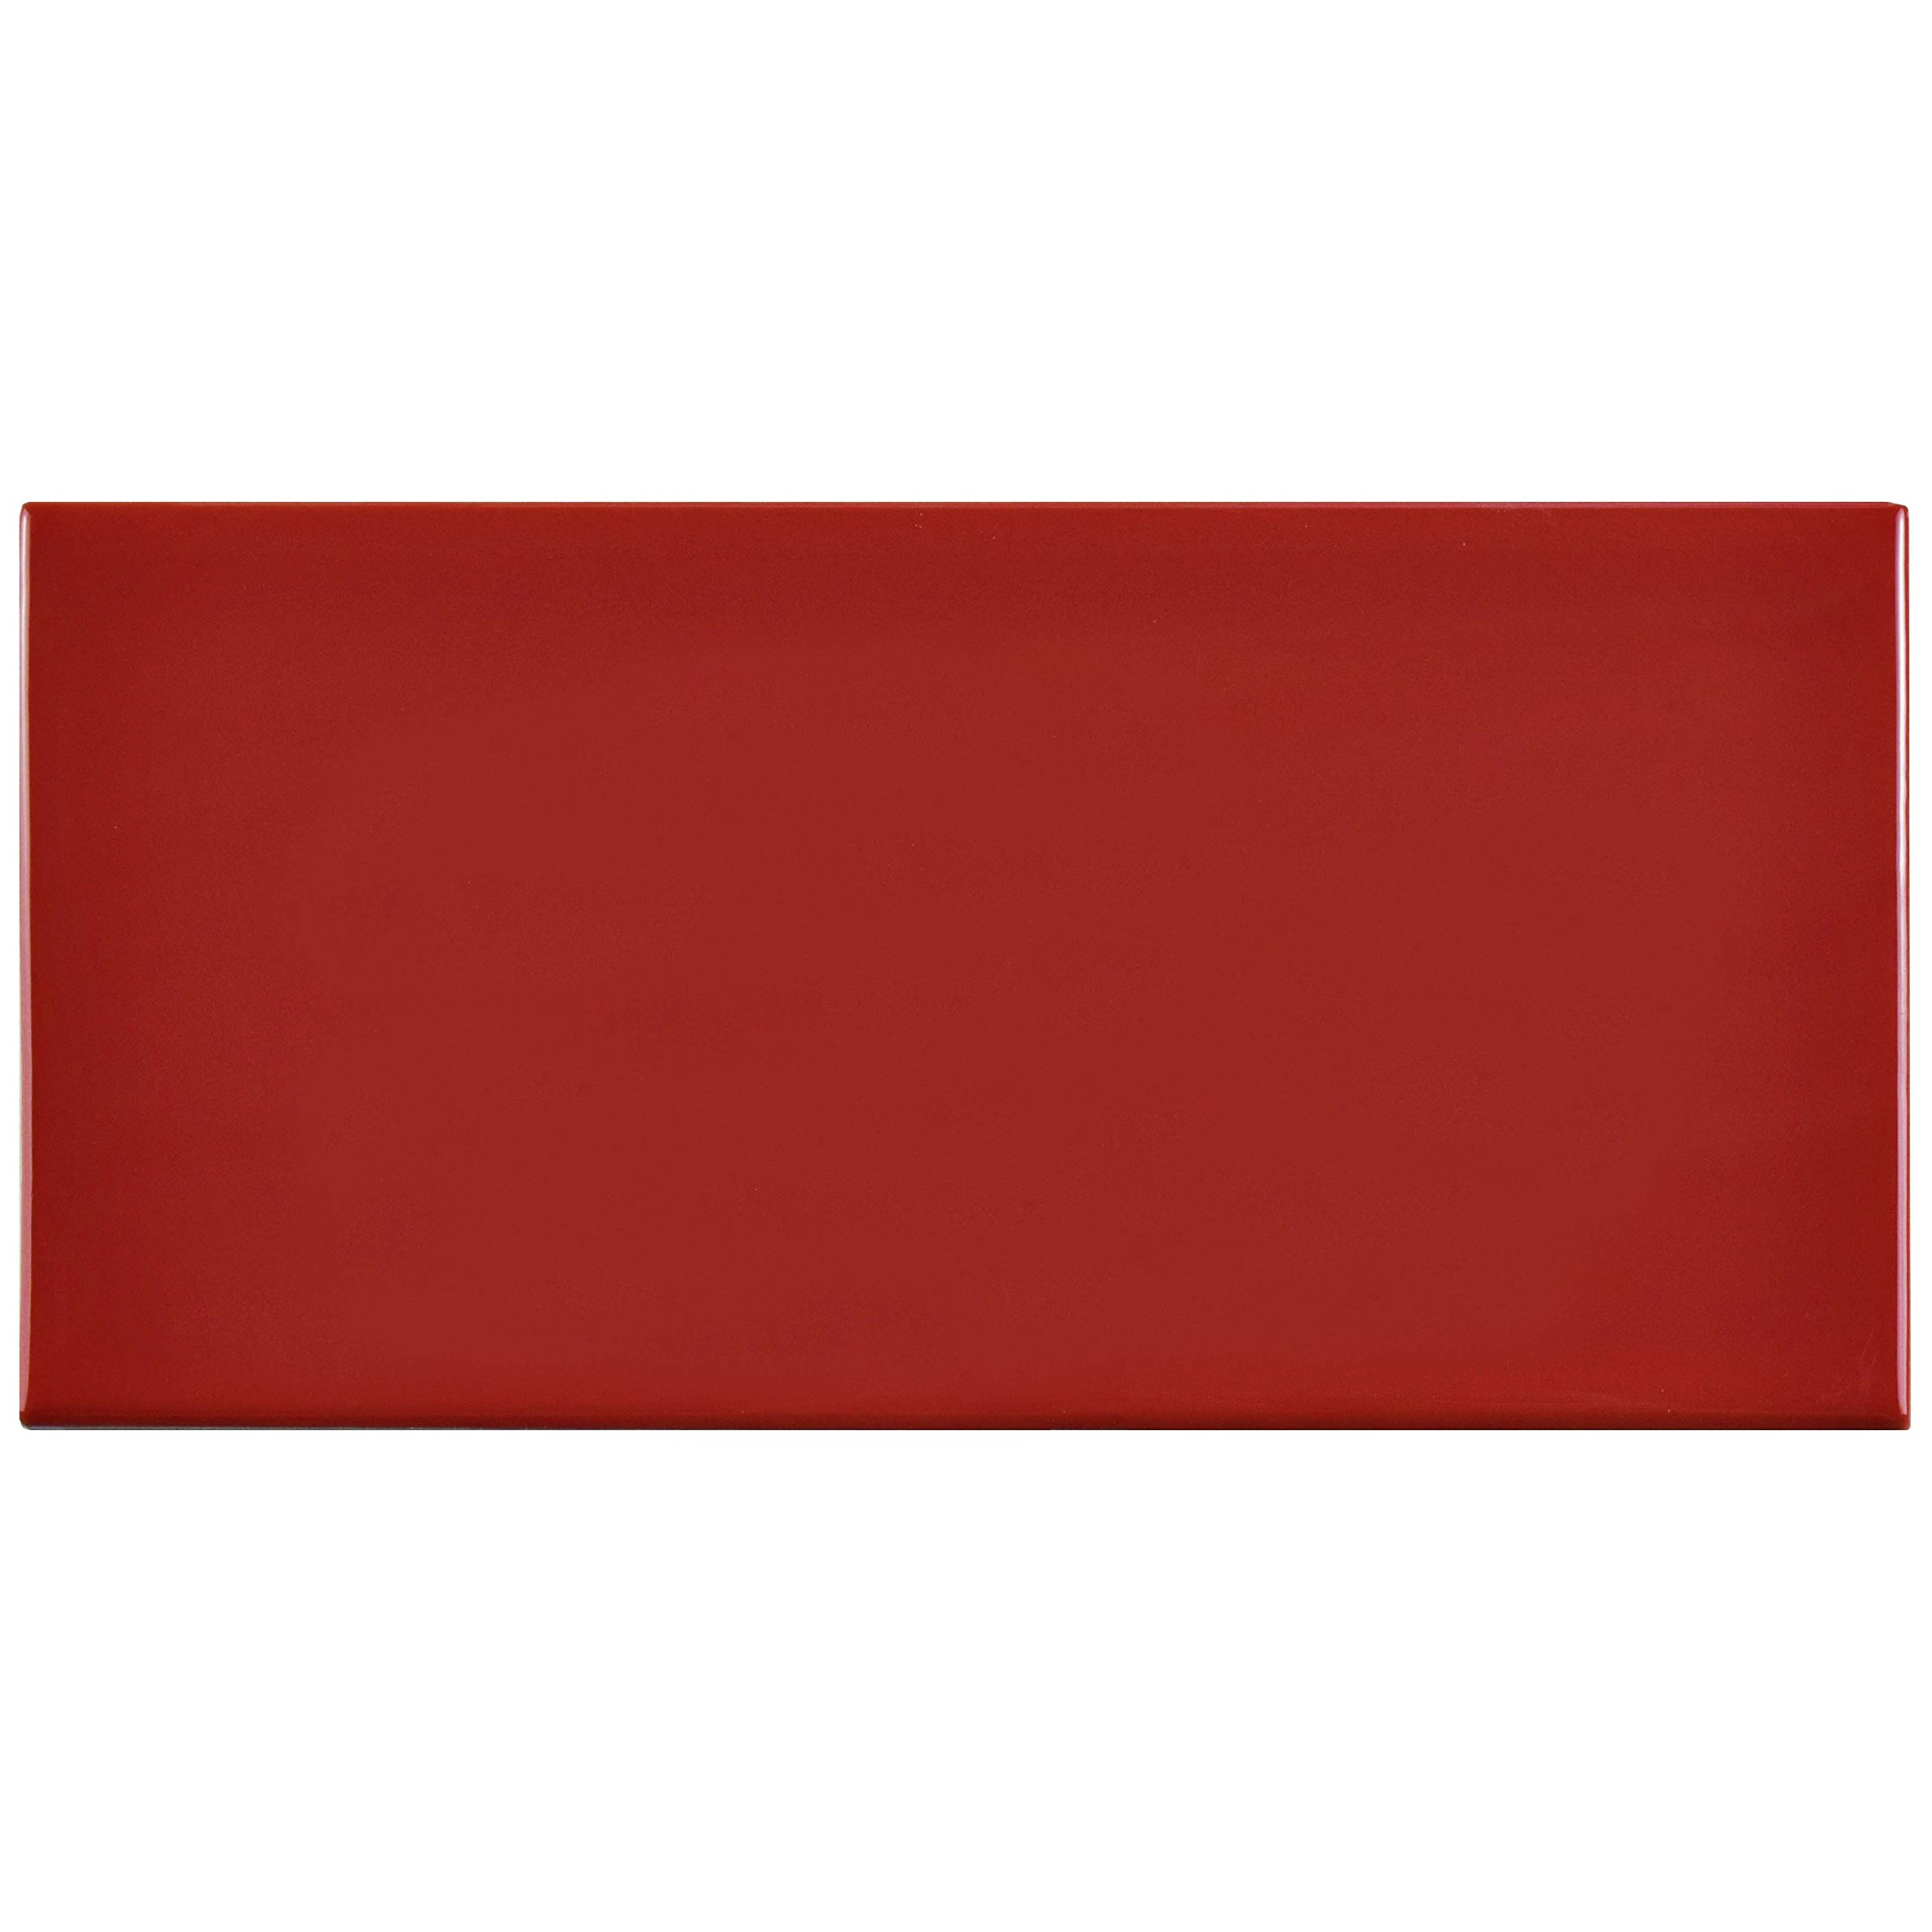 SomerTile WXR3PSAR Pente Subway Ceramic Wall Tile, 3'' x 6'', Glossy Apple Red